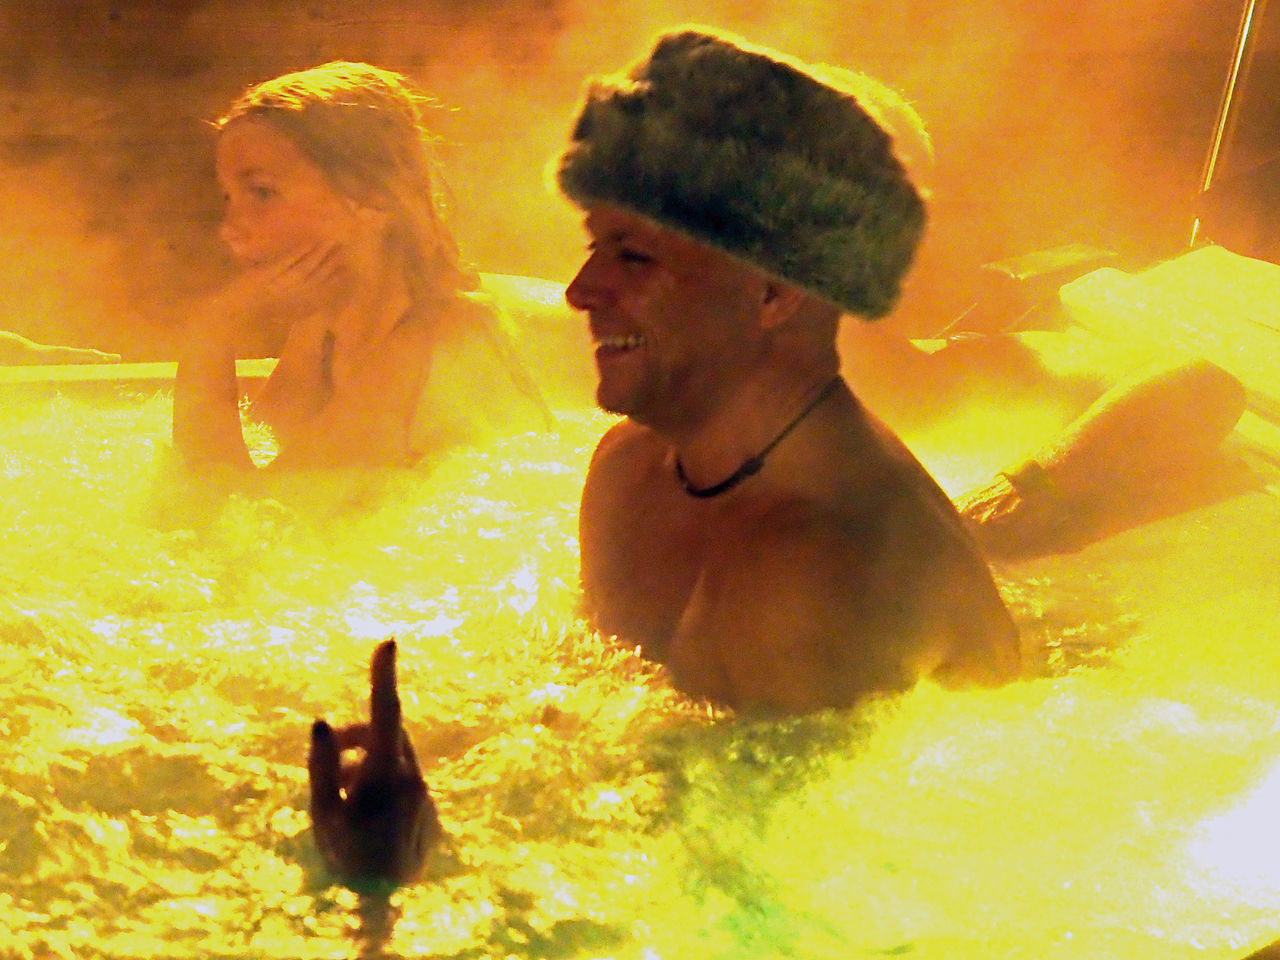 Hat in Hot Tub Close-up Enjoyment Fun In The Tub Happiness Hot Hat Hot Head Hot Tub Leisure Activity Lifestyles Men My Year My View Party - Social Event Real People Shirtless Smiling Two People Young Adult